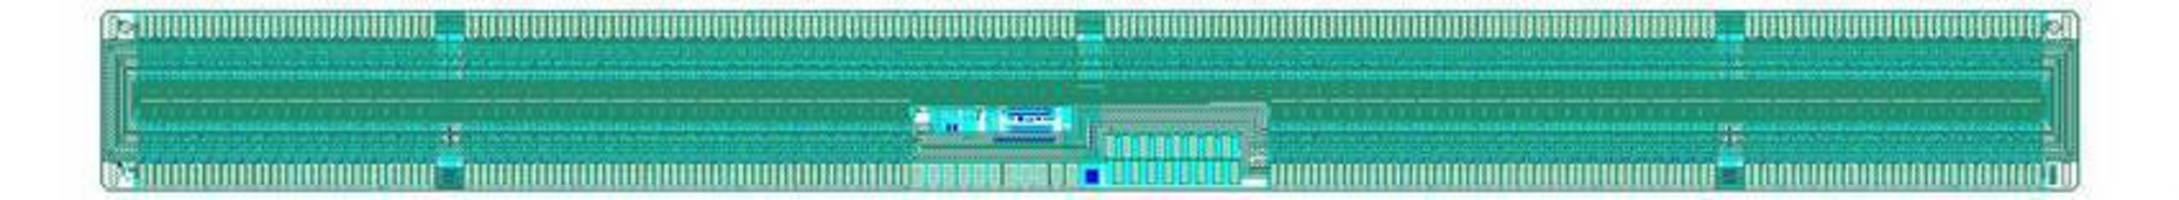 EPD Driver IC features 400 outputs rated for �15 V.